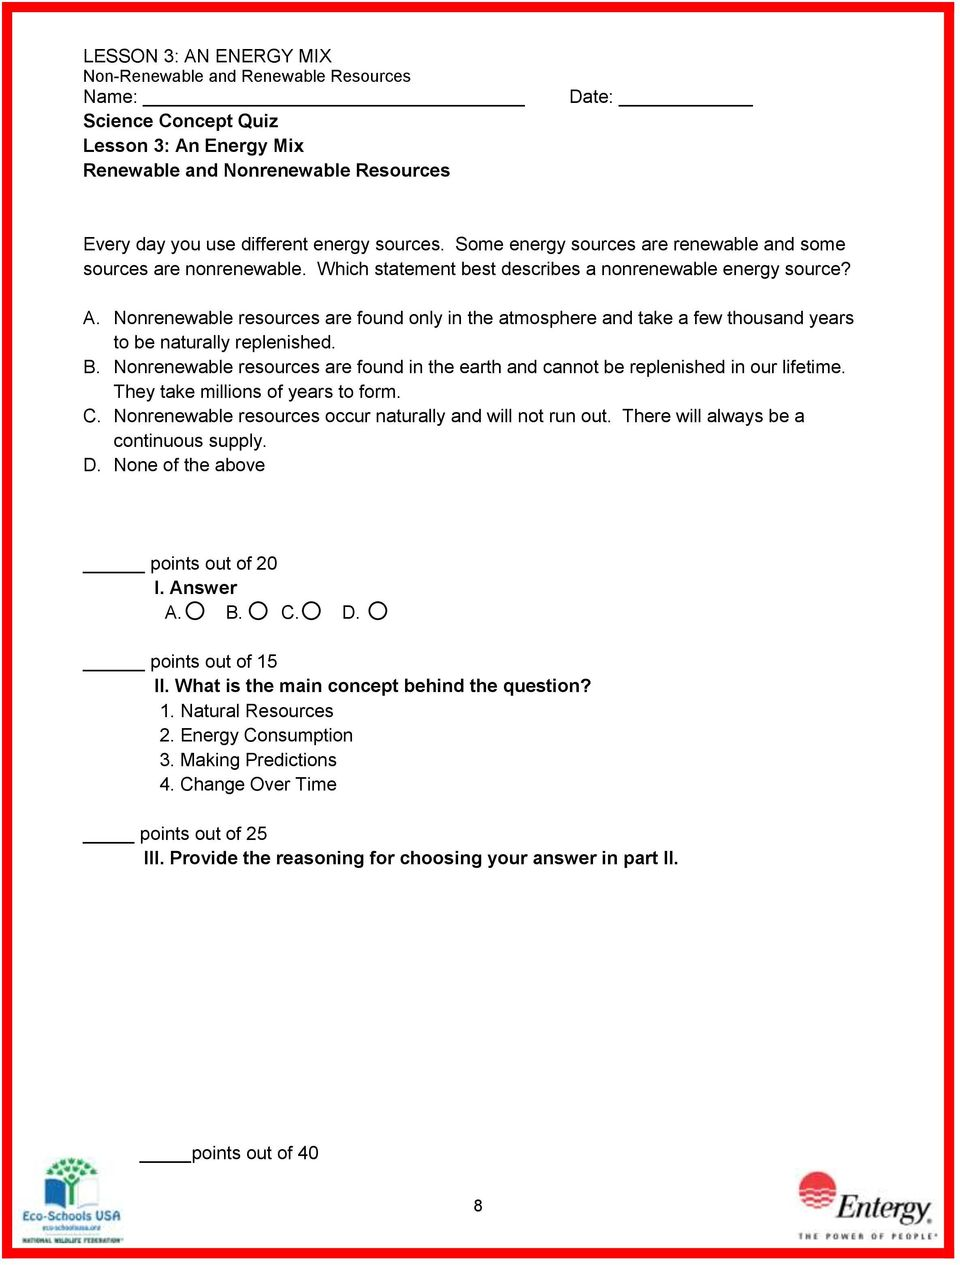 worksheet Renewable And Nonrenewable Resources Worksheets lesson 3 an energy mix renewable and nonrenewable resources pdf are found only in the atmosphere take a few thousand years to be